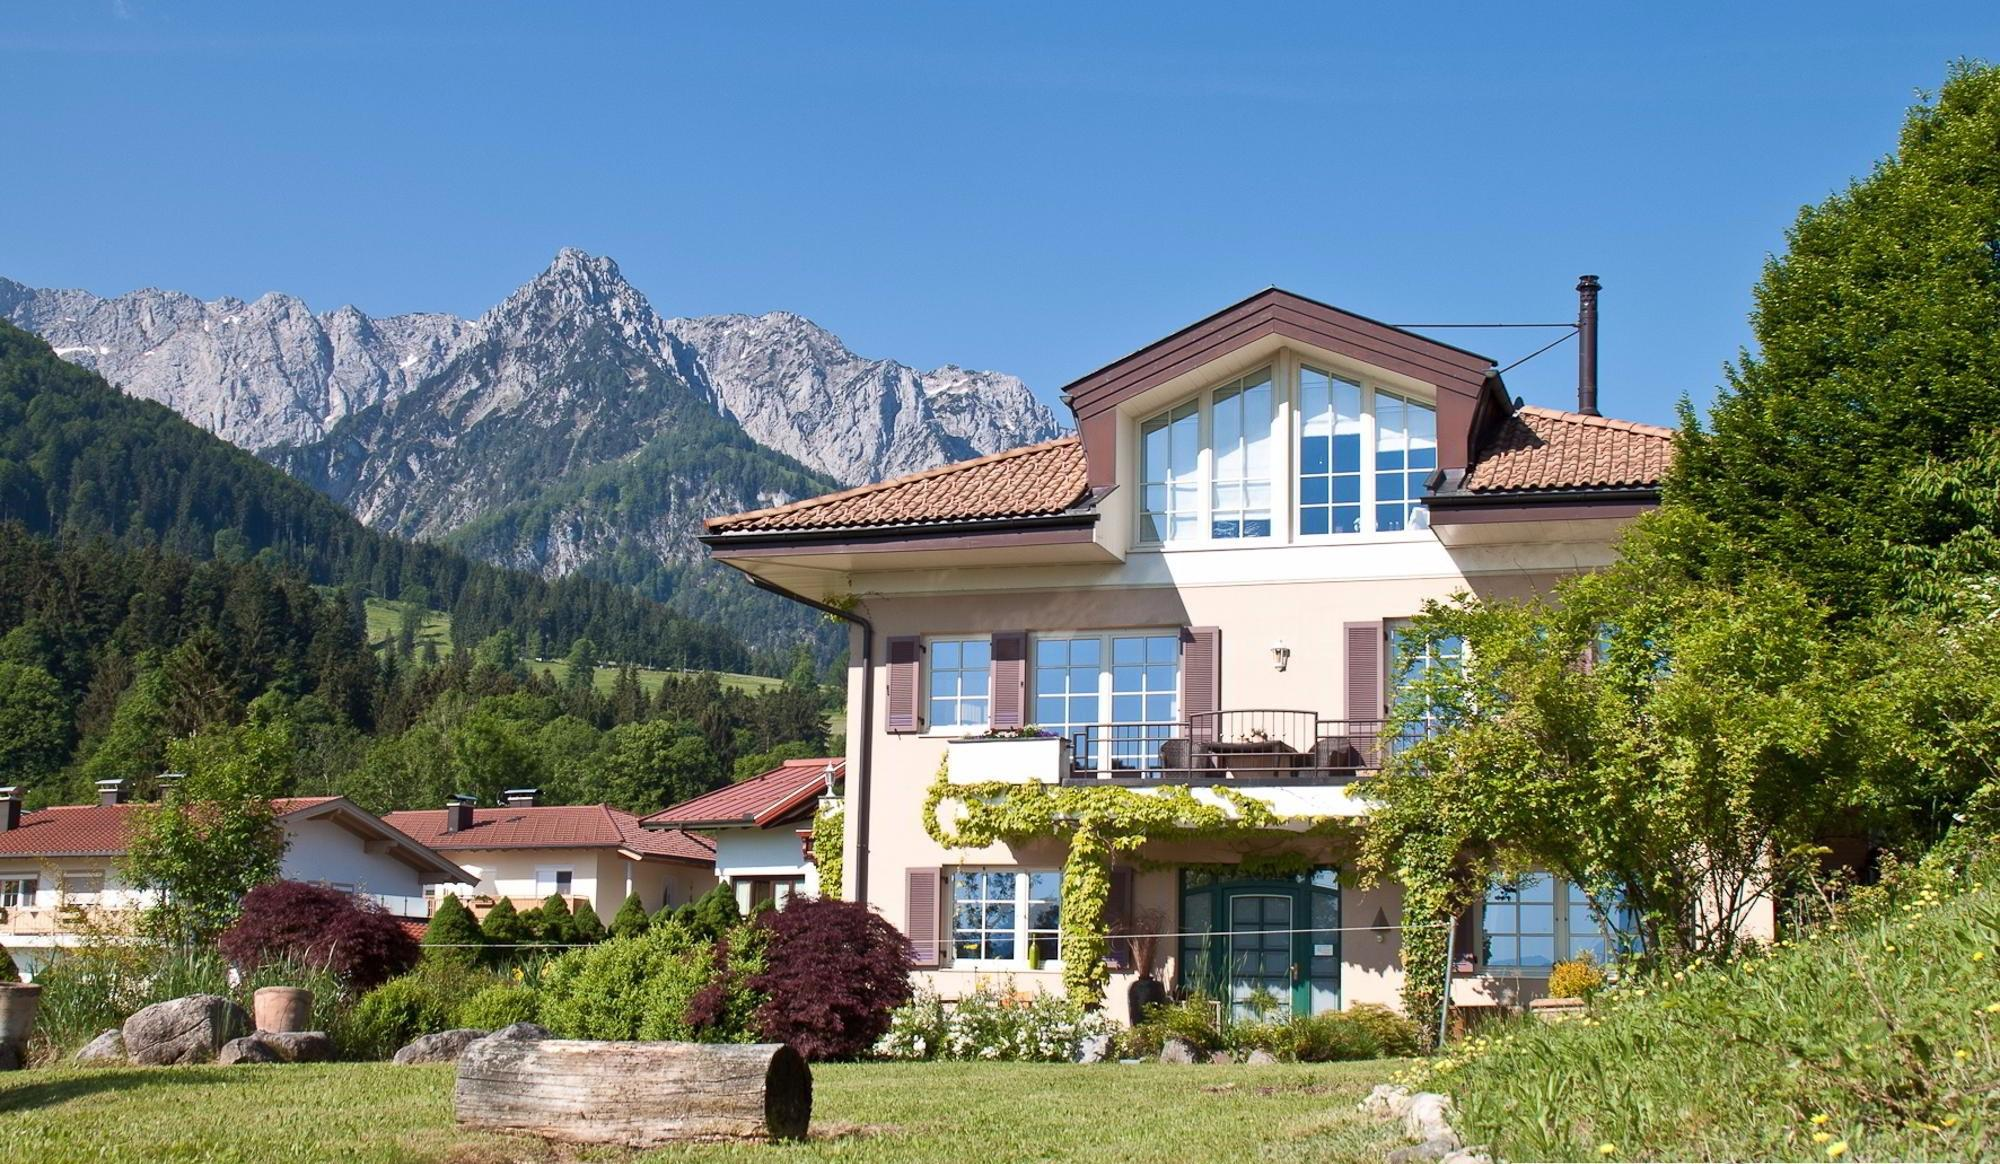 Comfortable country villa with a lake view in village of Walchsee for Sale - Tirol - Austria